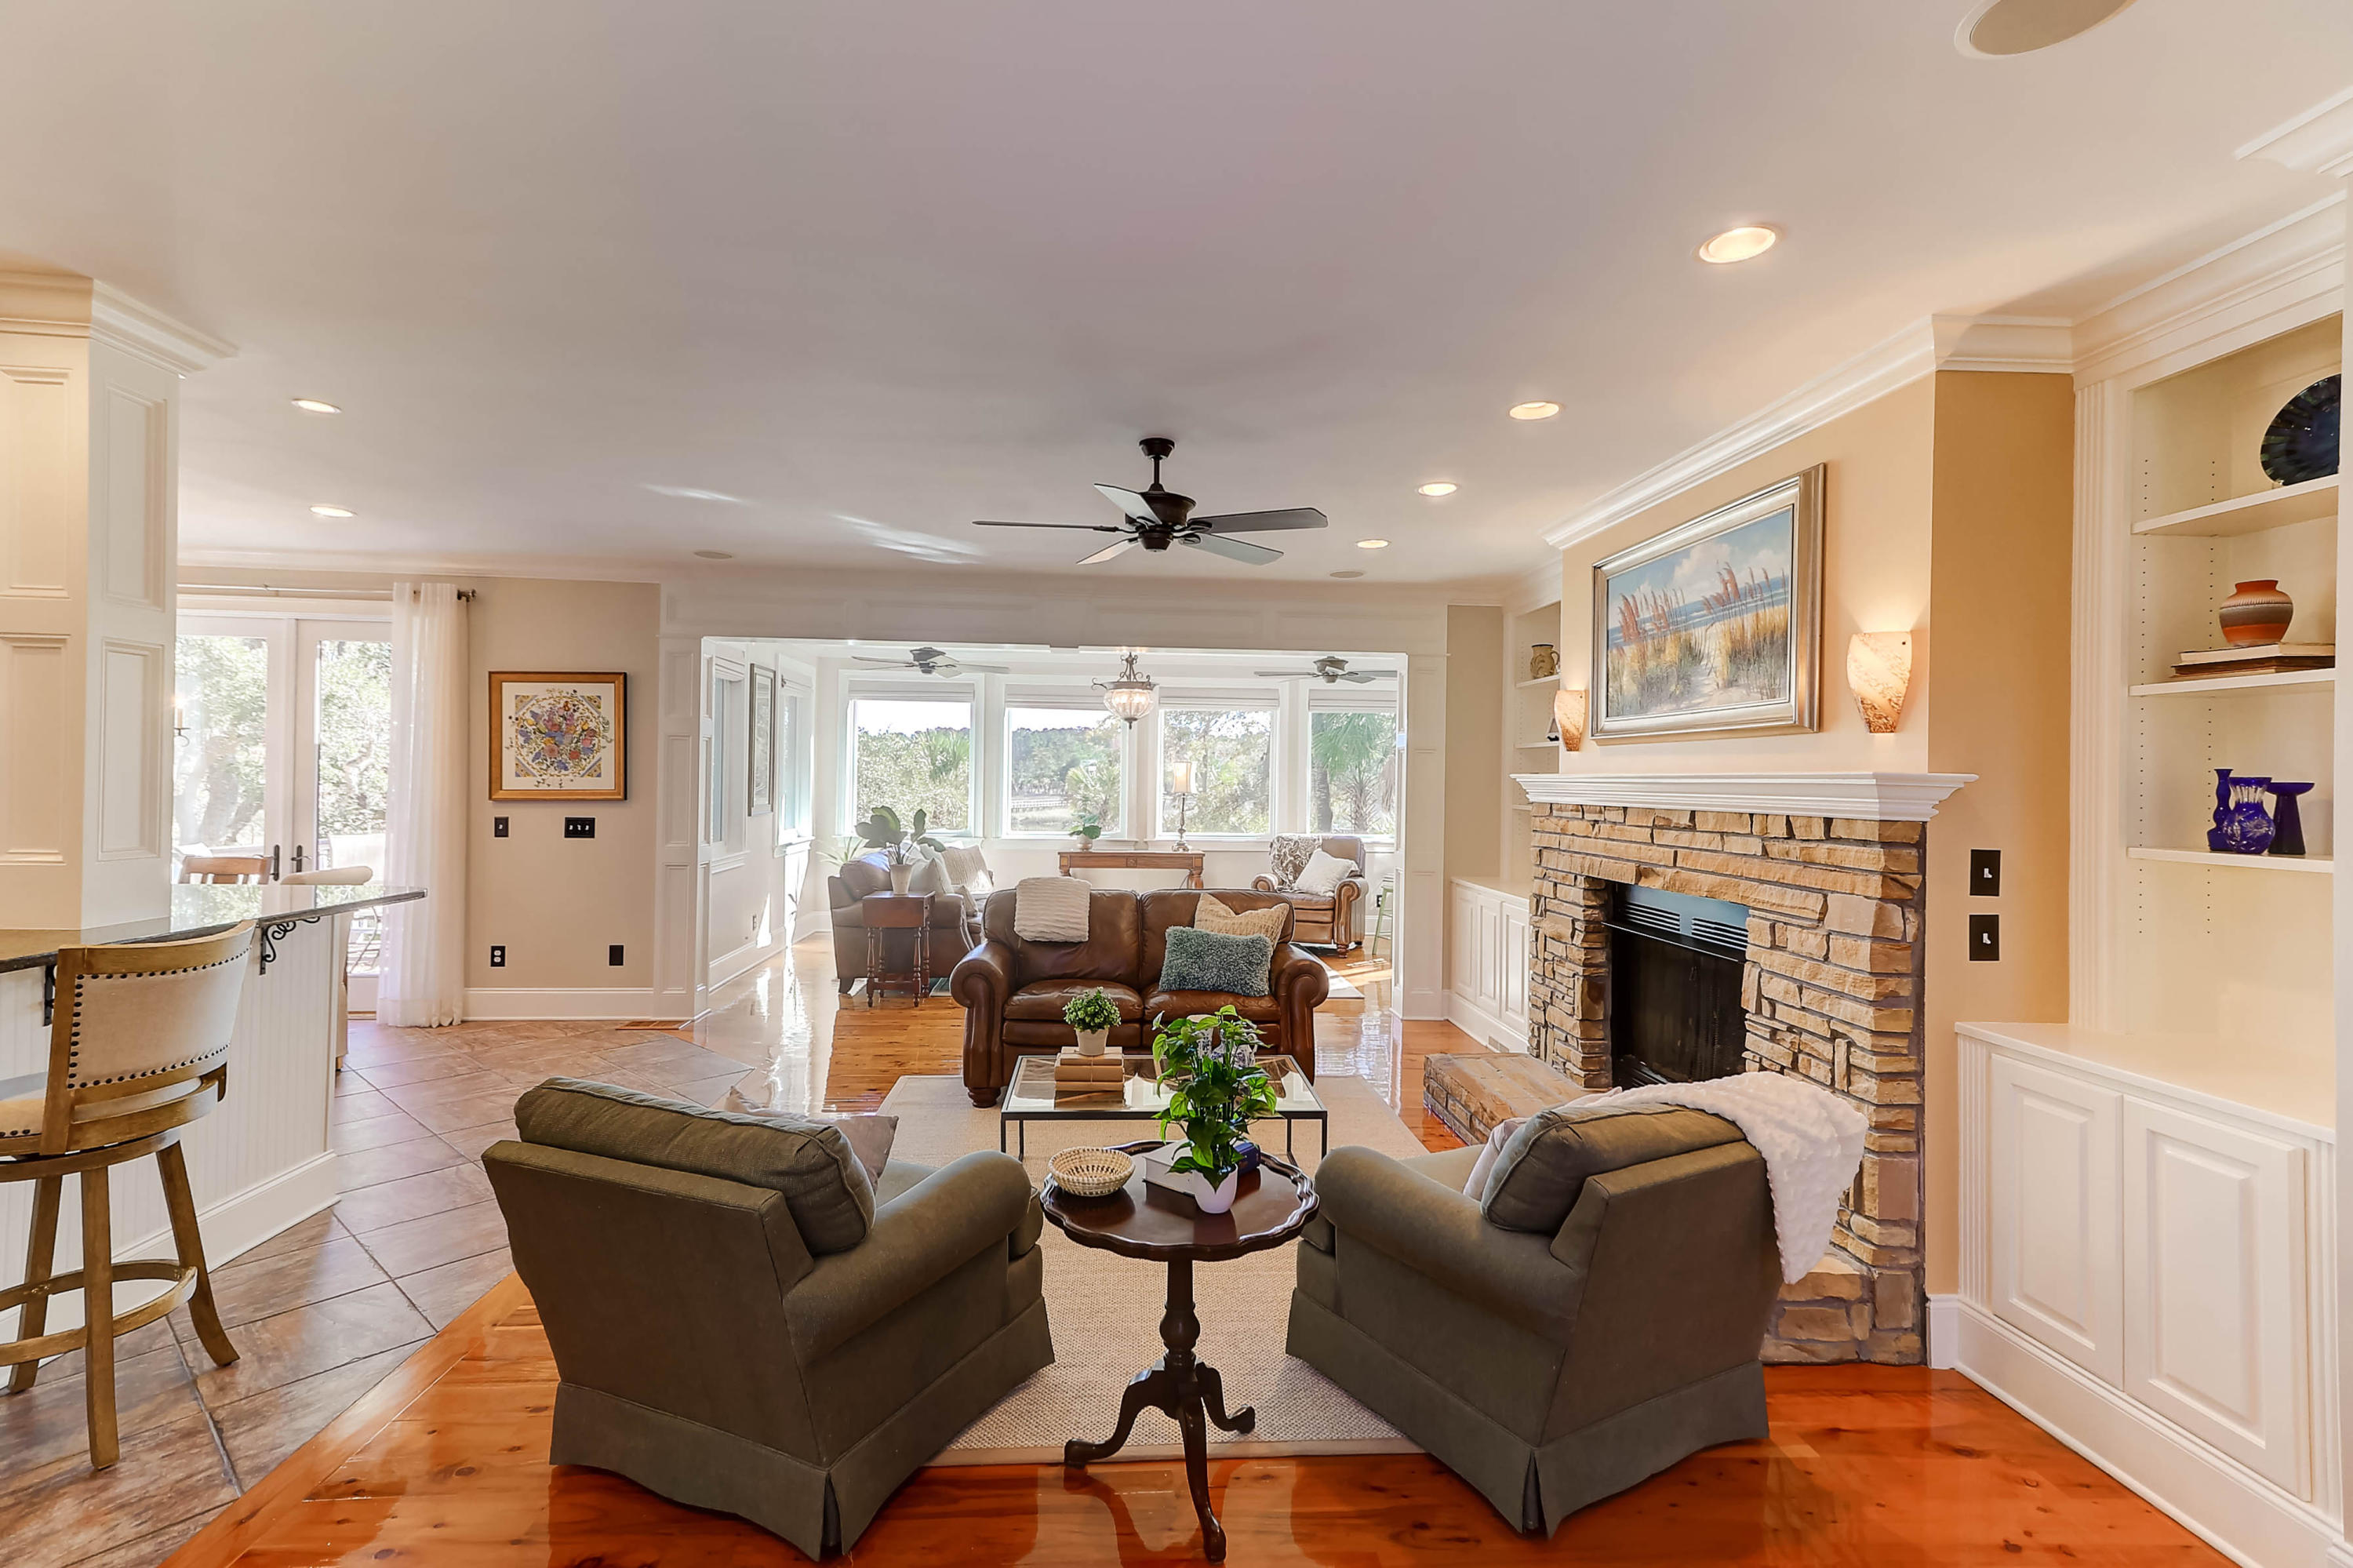 Dunes West Homes For Sale - 1764 Greenspoint, Mount Pleasant, SC - 45